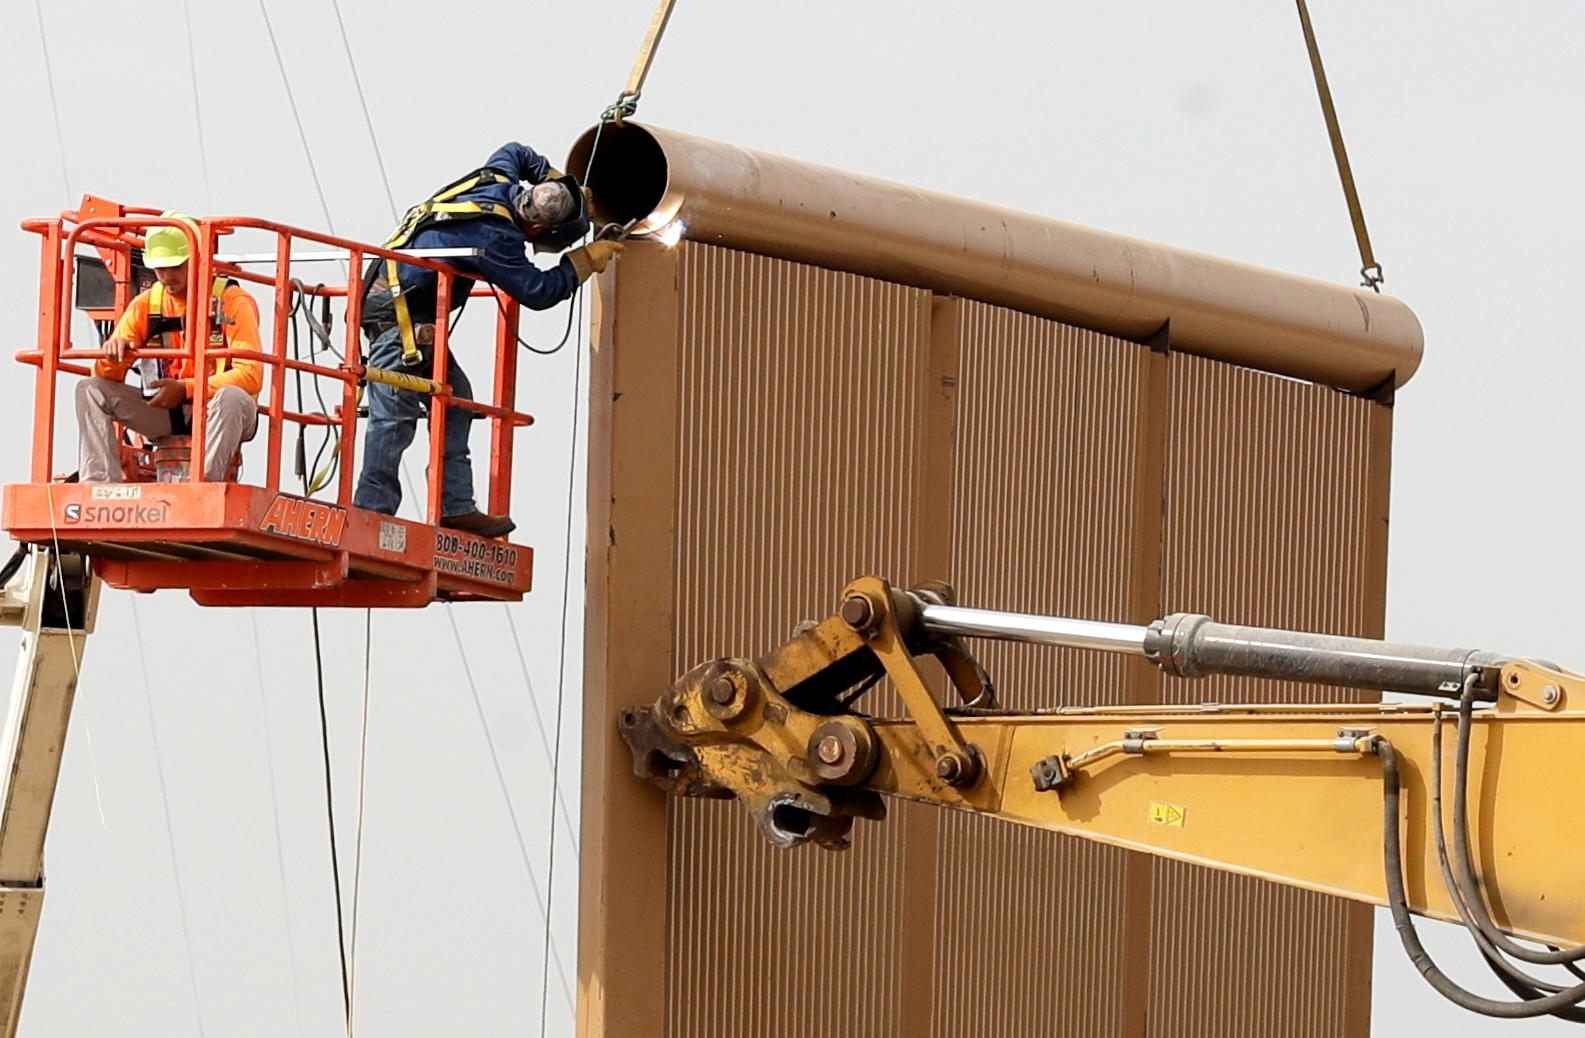 Crews work on a border wall prototype near the border with Tijuana, Mexico, Thursday, Oct. 19, 2017, in San Diego. Companies are nearing an Oct. 26 deadline to finish building eight prototypes of President Donald Trump's proposed border wall with Mexico. (AP Photo/Gregory Bull)